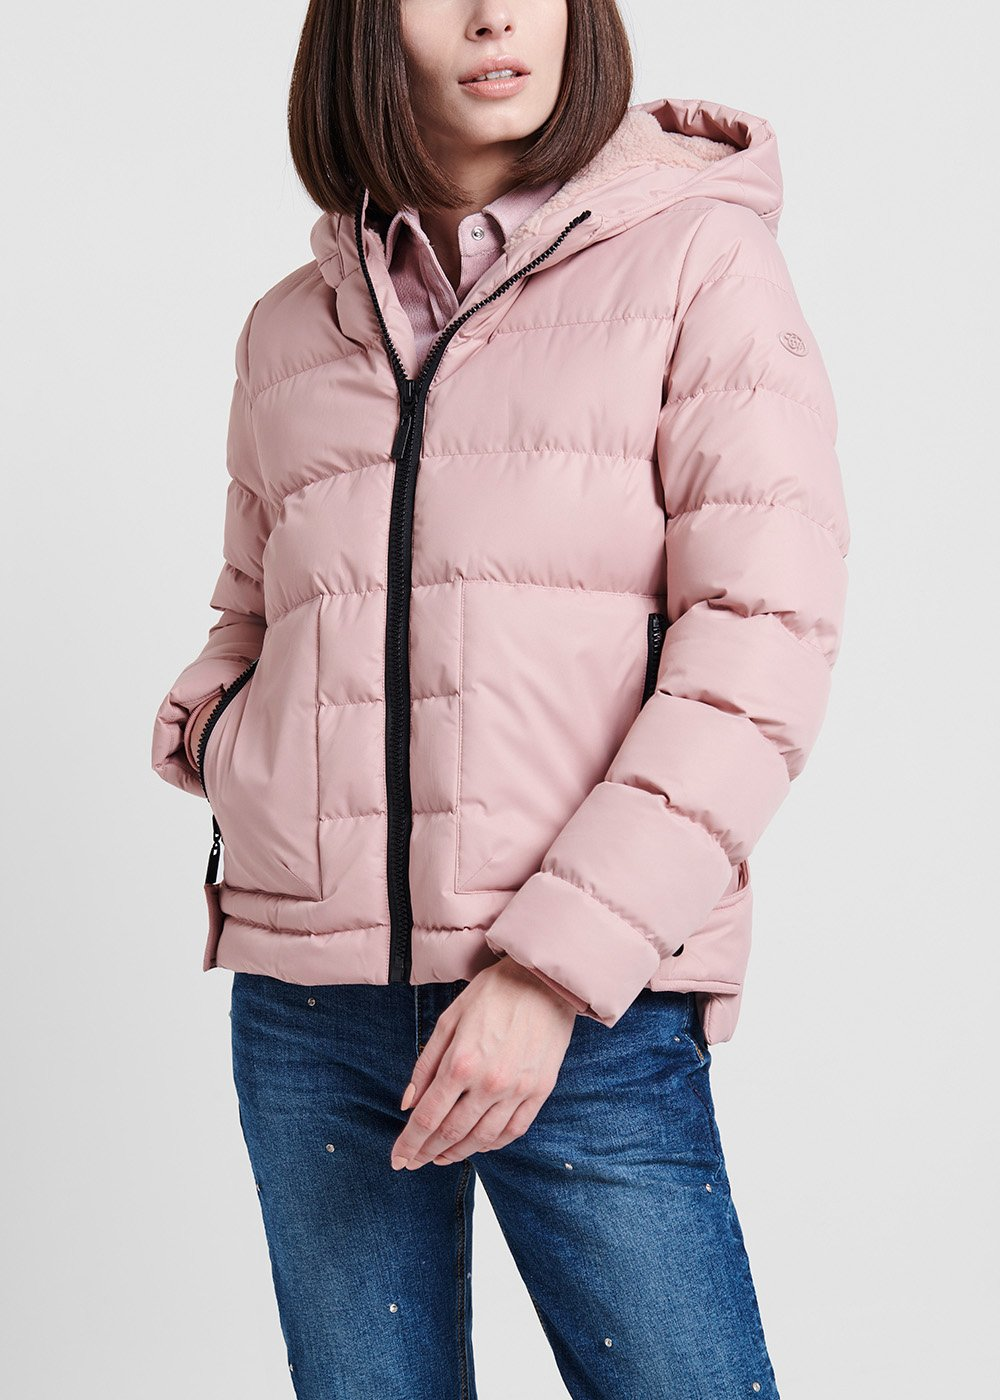 Nylon sepia - coloured down jacket with faux - fur inside - Solvente - Woman